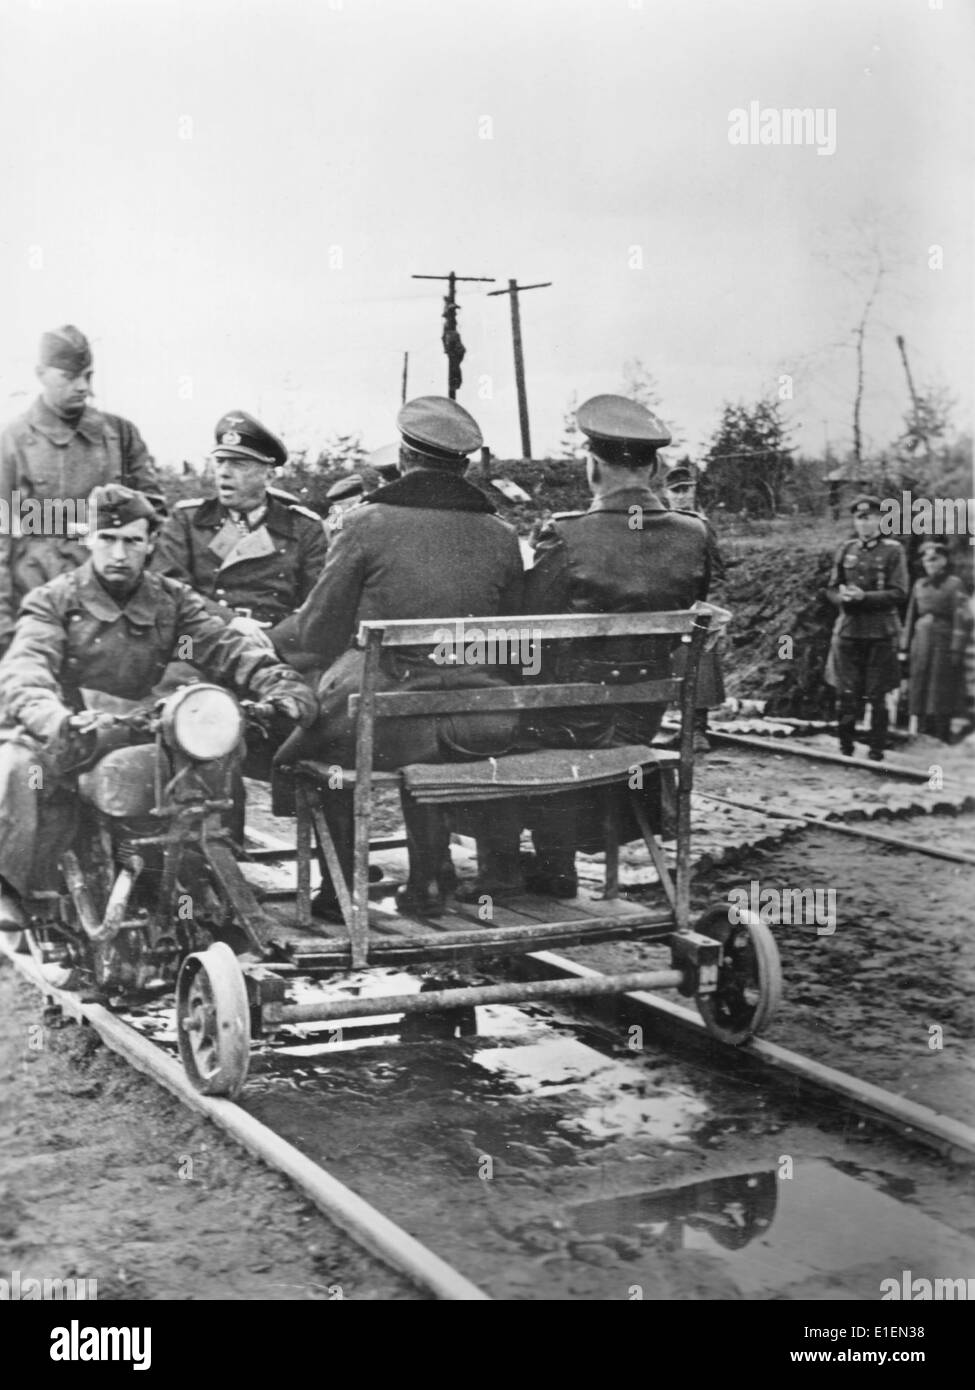 Propaganda text! from Nazi news reporting on the back of the picture: 'With the draisine to the front. The paths and roads, which especially during inclement weather are impassable in many cases, have made the draisine a frequently used means of transport. Even the commander-in-chief of an army group, Field marshal Kuechler, uses such a vehicle for his inspections of the front.' Picture taken at the Eastern Front on 10 June 1943. (Flaws in quality due to the historic picture copy) Photo: Berliner Verlag/Archive - NO WIRE SERVICE – - Stock Image